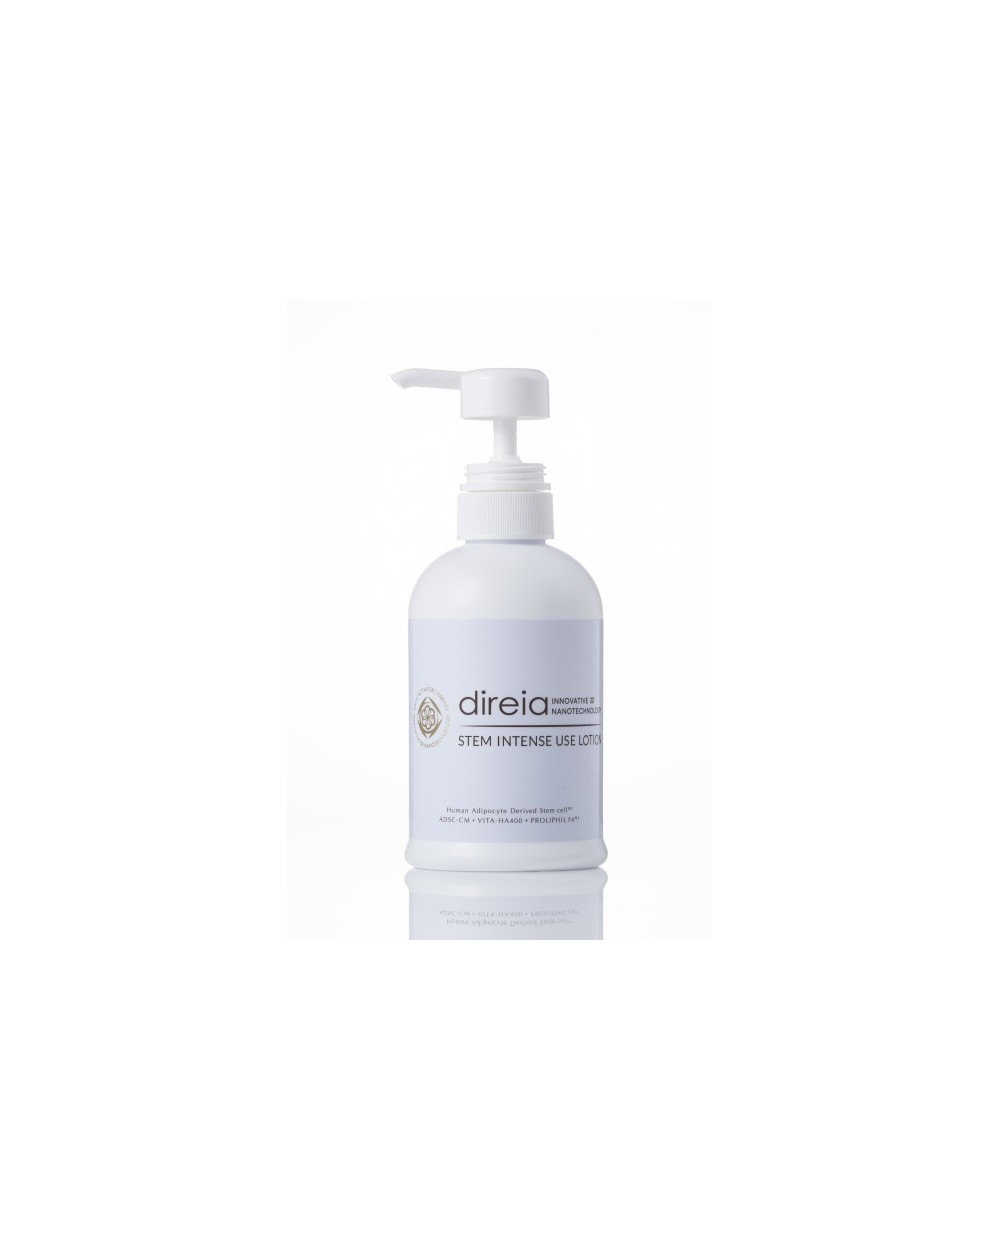 bfcb30c3981 Direia Stem Intense Use Lotion 400ml (professional package) - Beauty ...